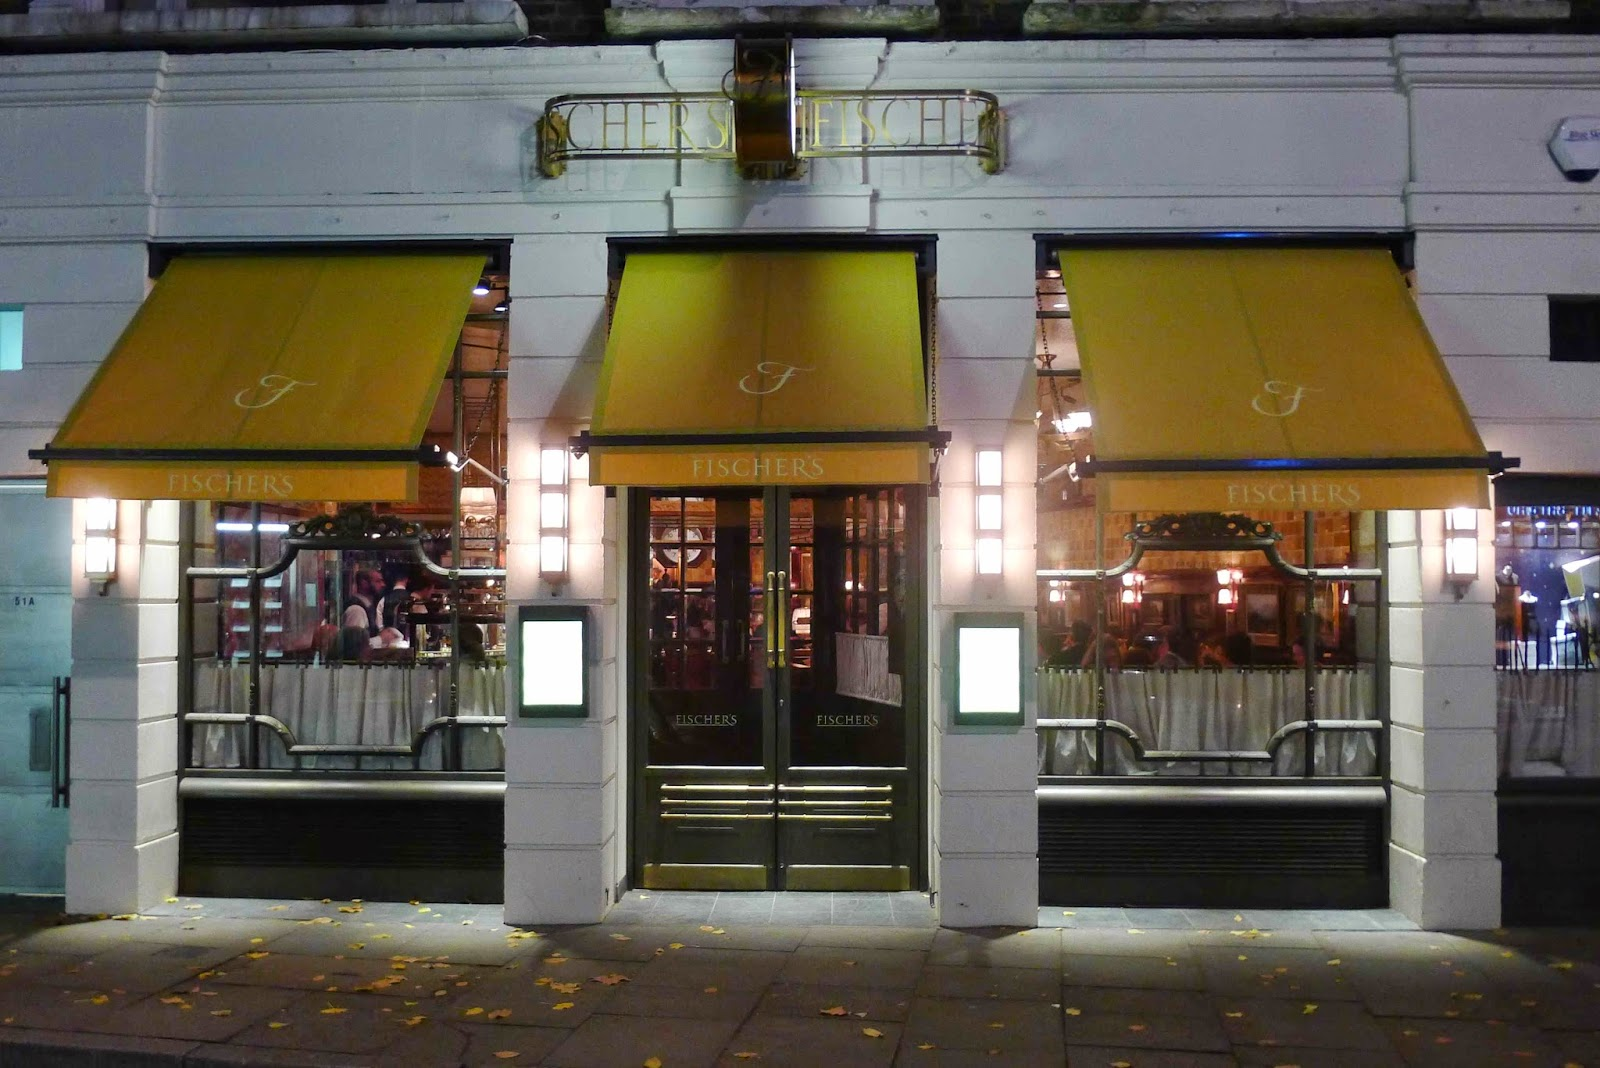 Gourmetgorro fischers marylebone london restaurant review fischers marylebone london restaurant review sisterspd